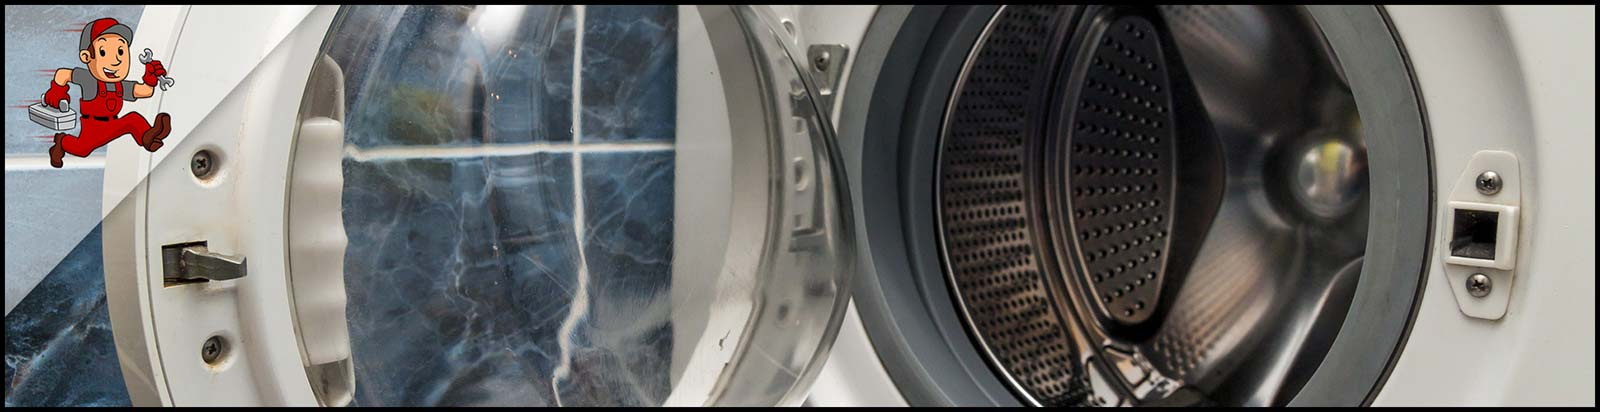 Home Appliance Repair and Service in Northern Central Ohio